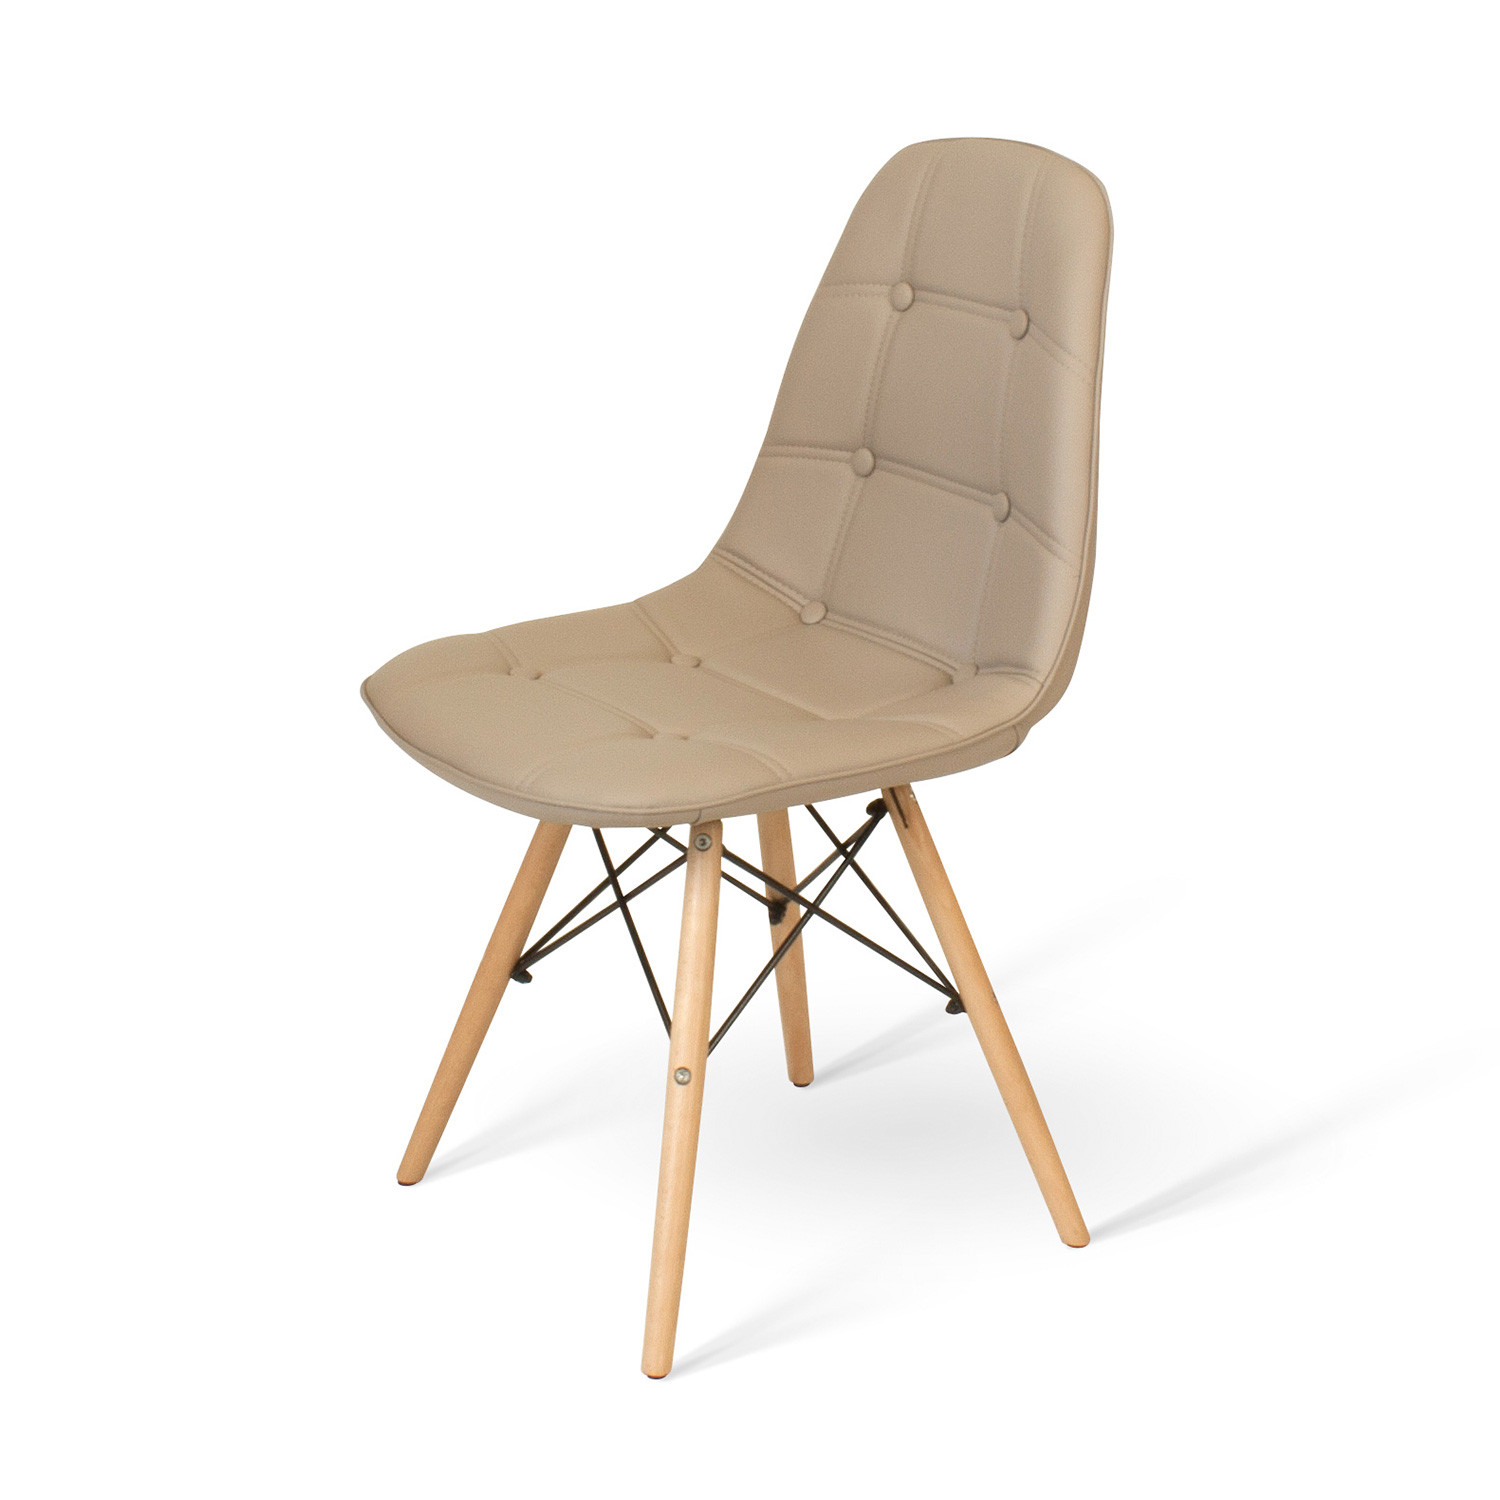 Удобный стул eames дизайн A-623 цвета капучино фото 1 — New Style of Furniture